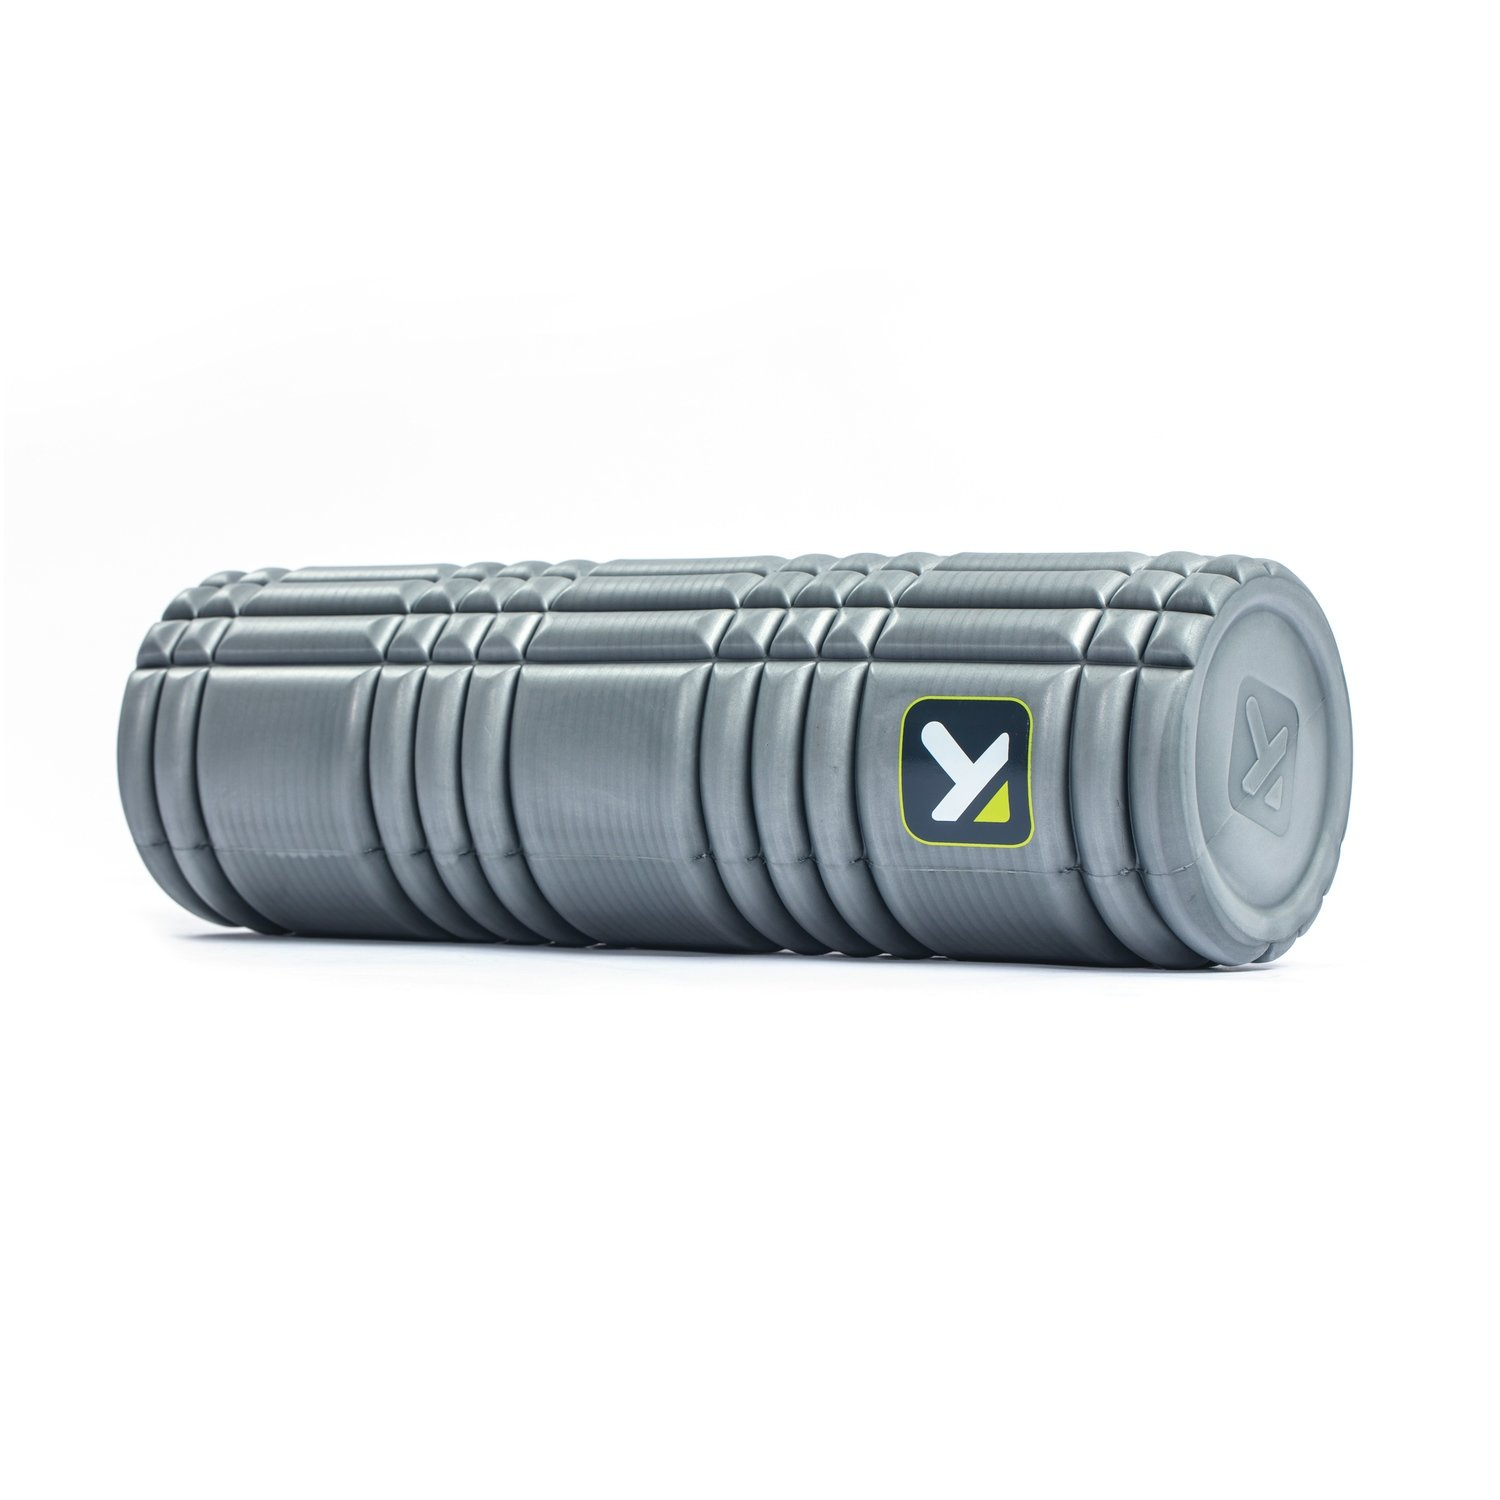 Trigger Point Core Multi Density Solid Foam Roller